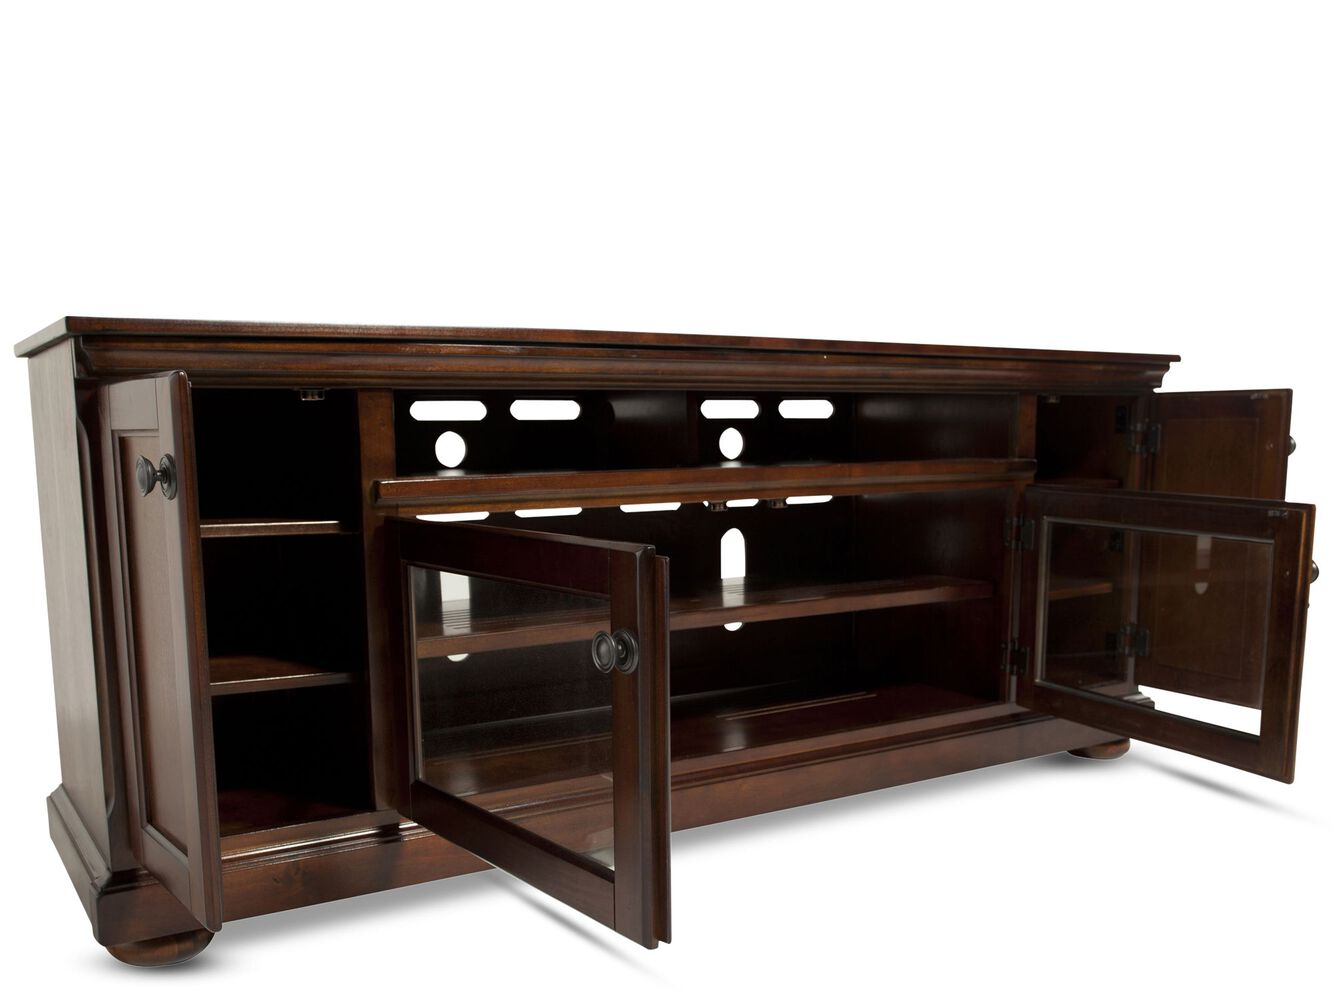 Corner Tv Stand For 65 Inch Tv 72 Inch Tv Stand Mathis Brothers